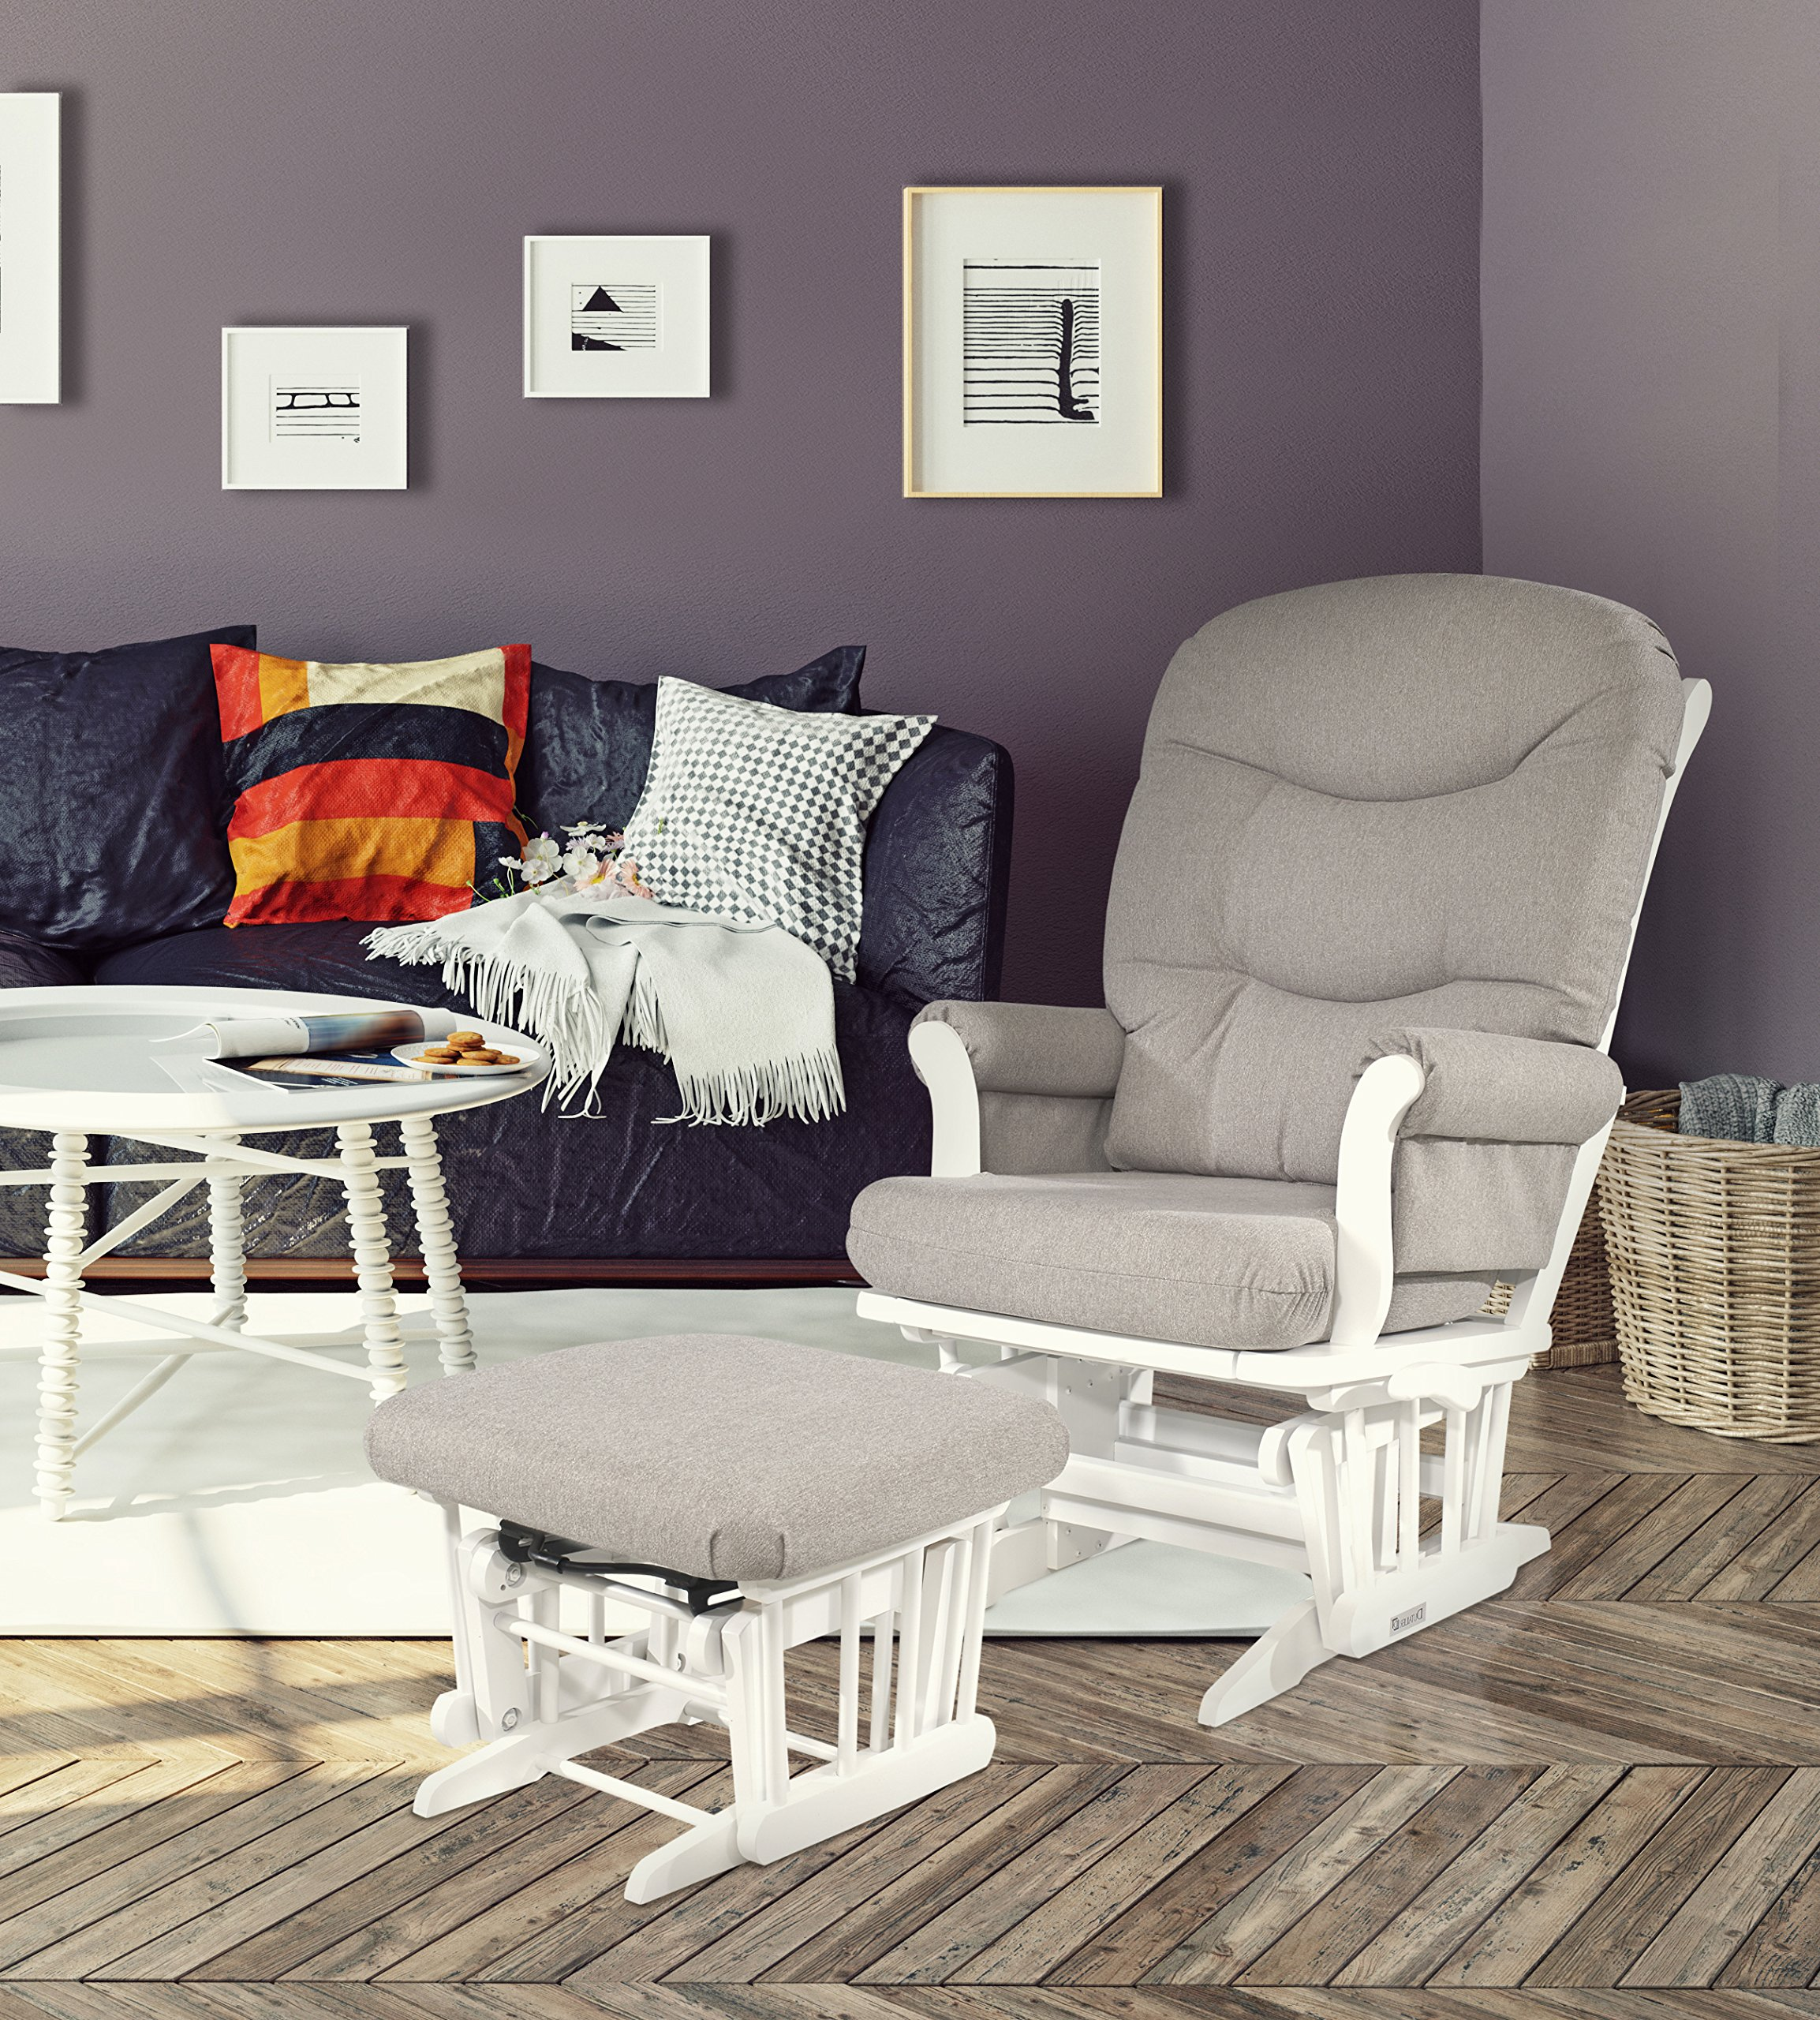 Dutailier Sleigh Glider-Multiposition, Recline and Ottoman Combo, WHITE FRAME/LIGHT GREY CUSHION by Dutailier